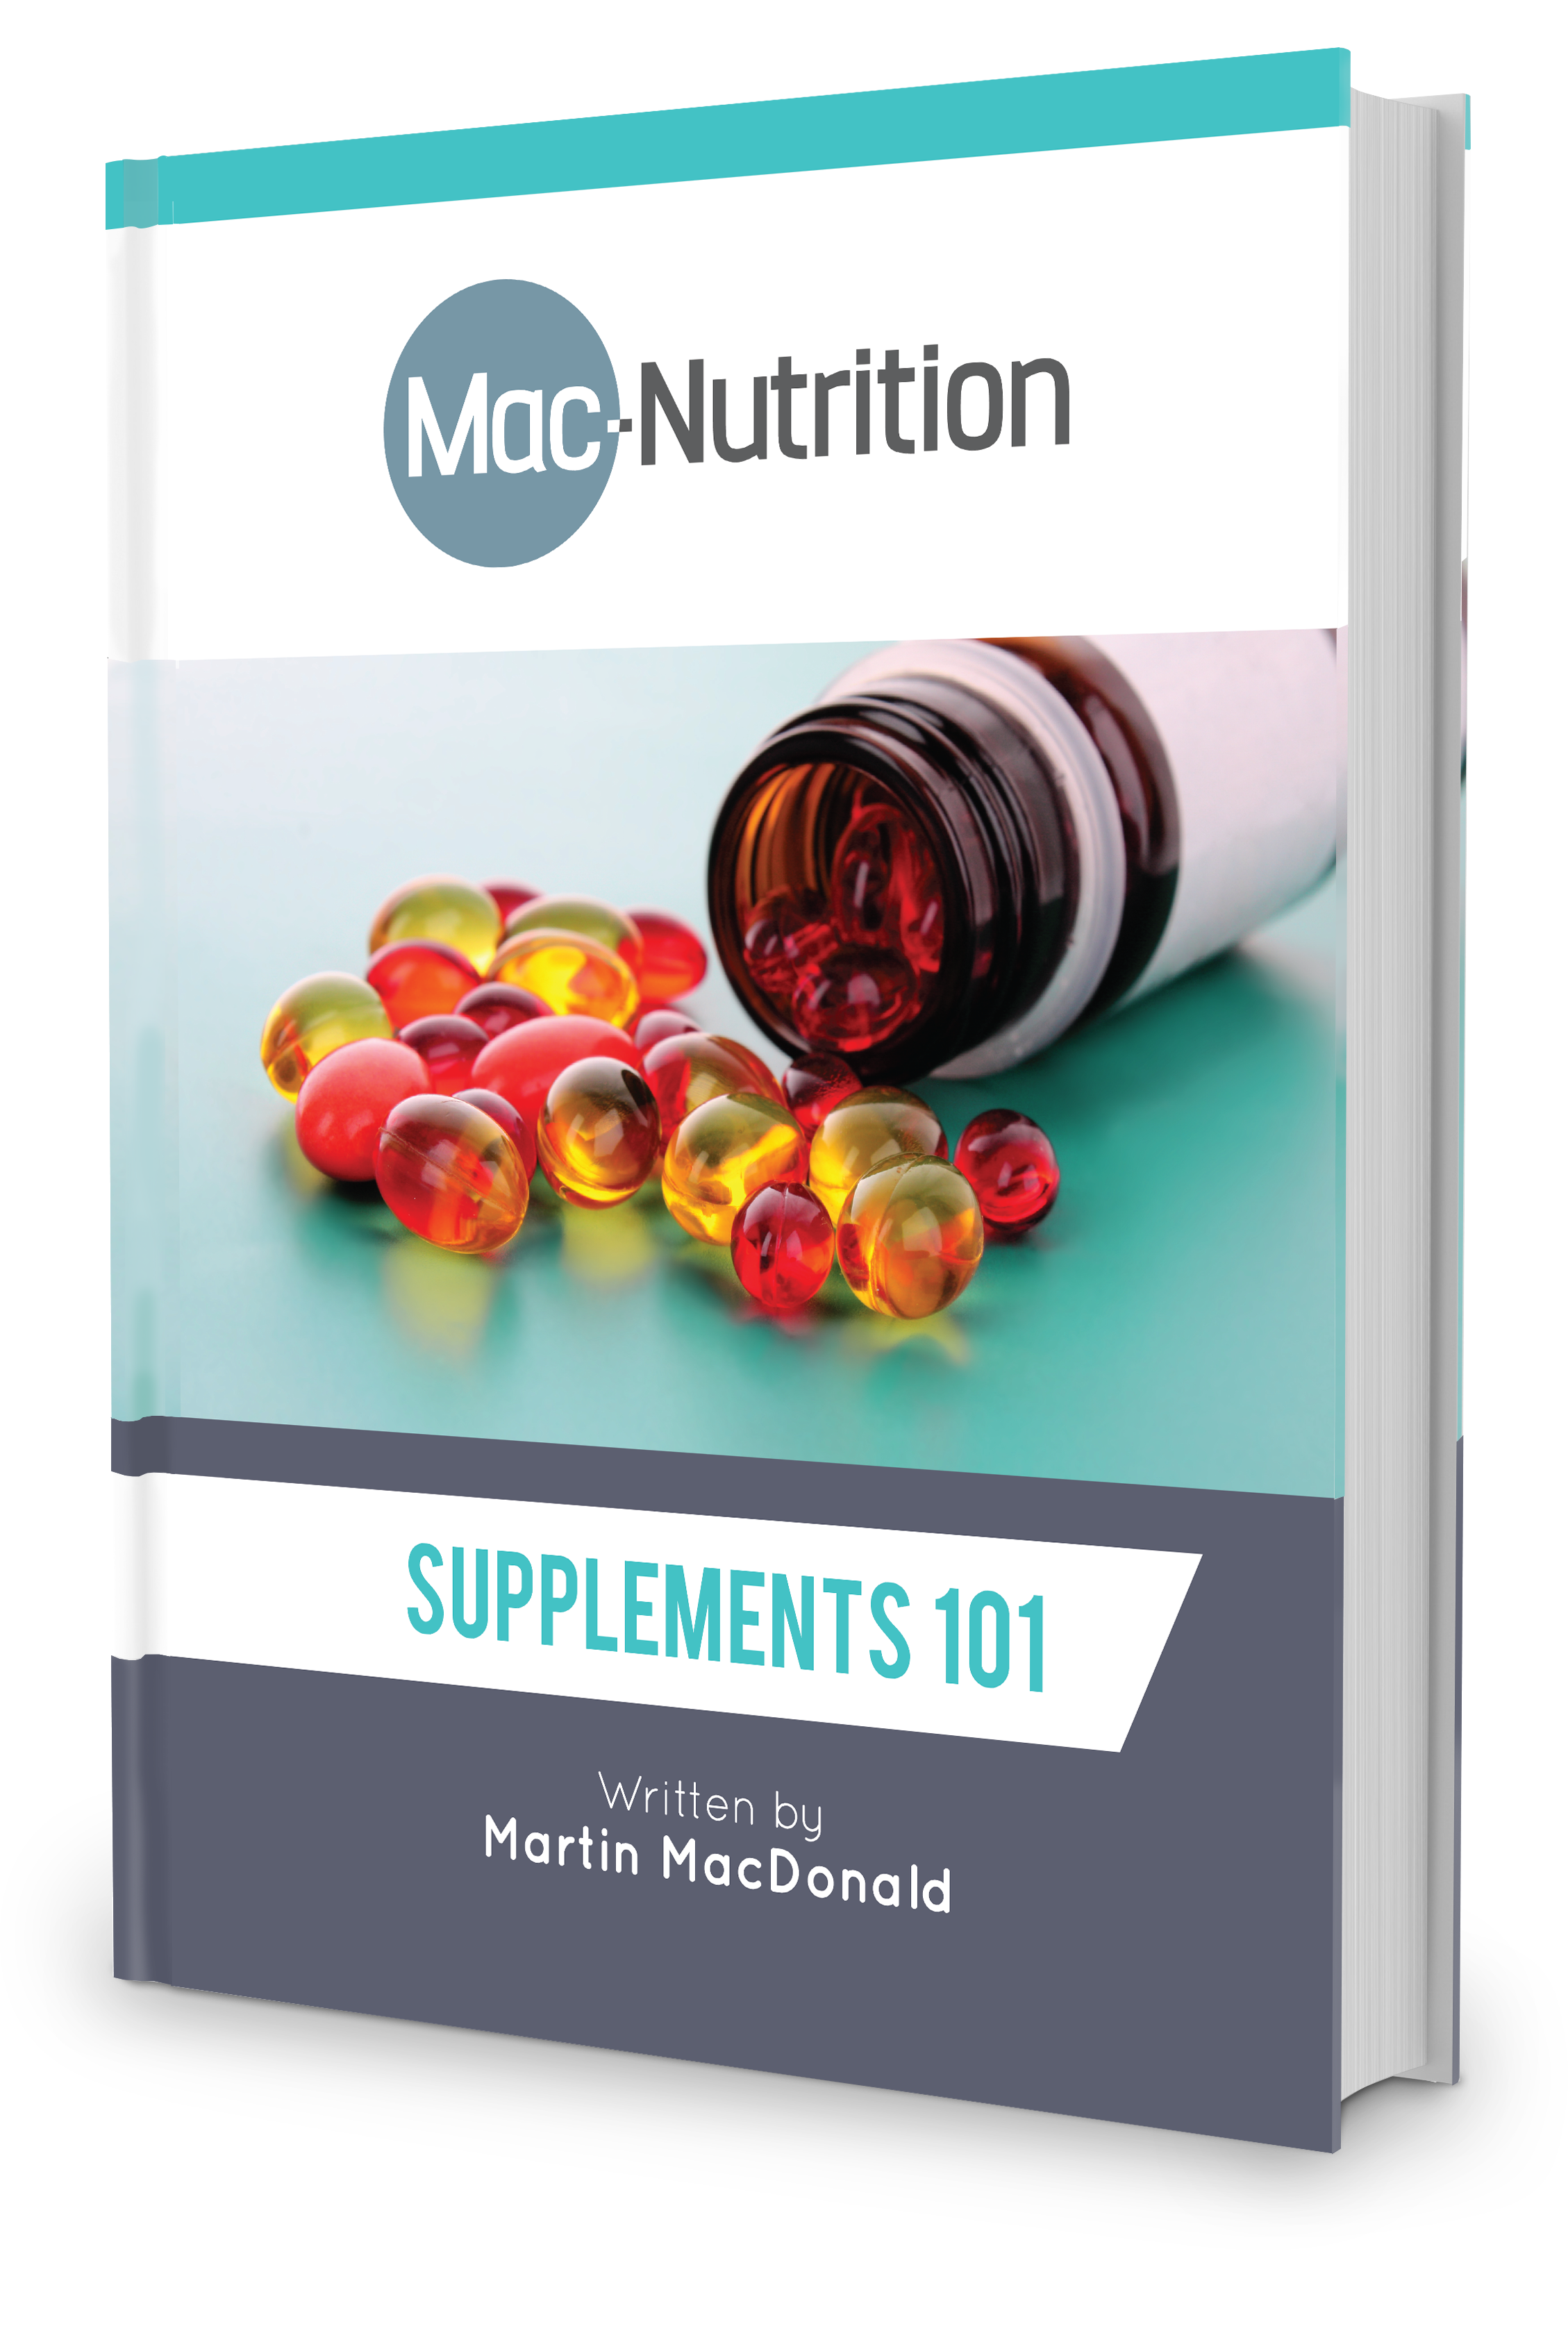 About   Mac-Nutrition